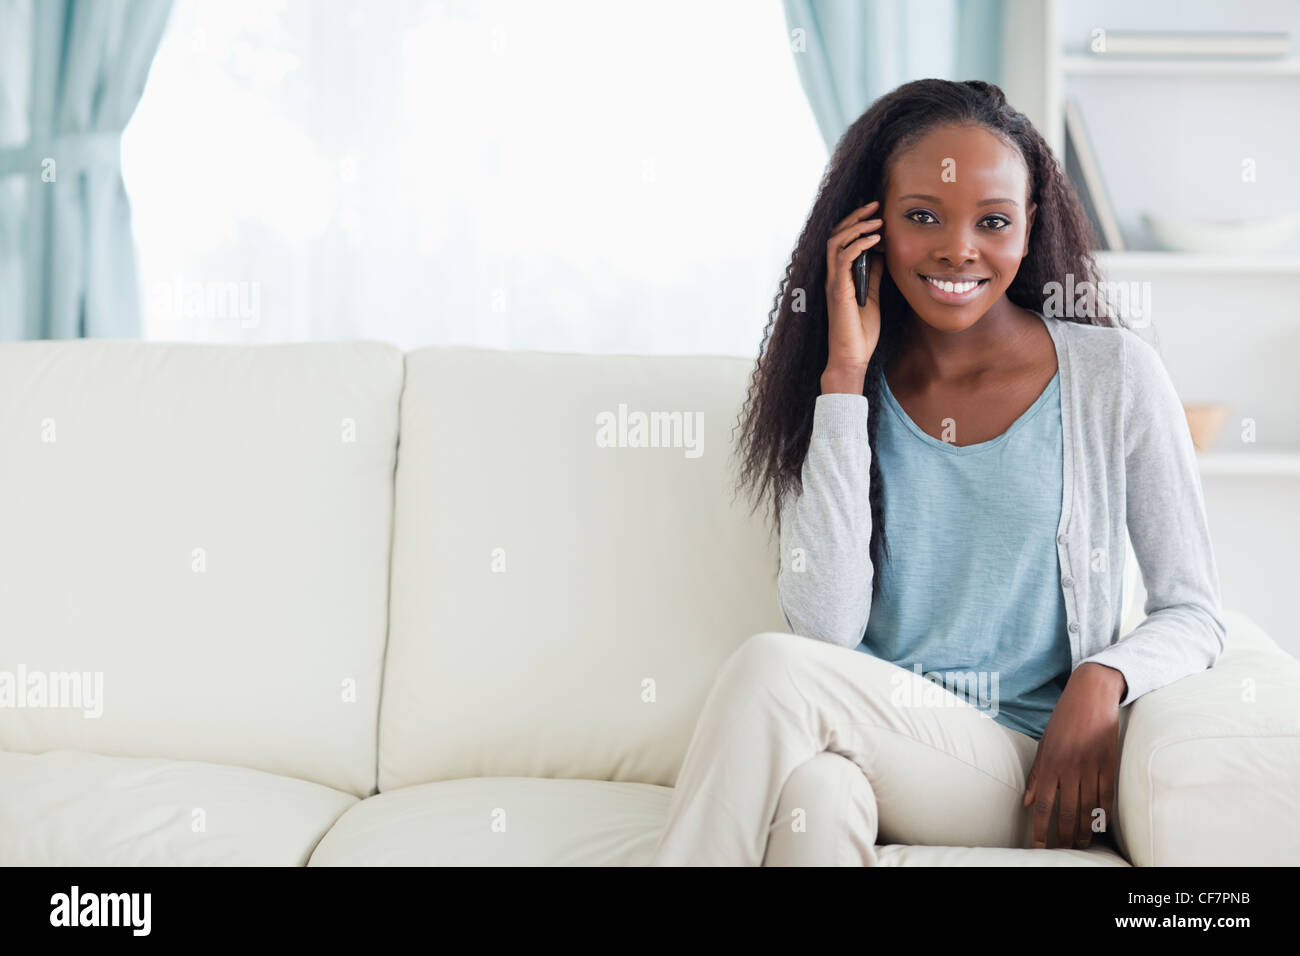 Woman phoning on couch - Stock Image